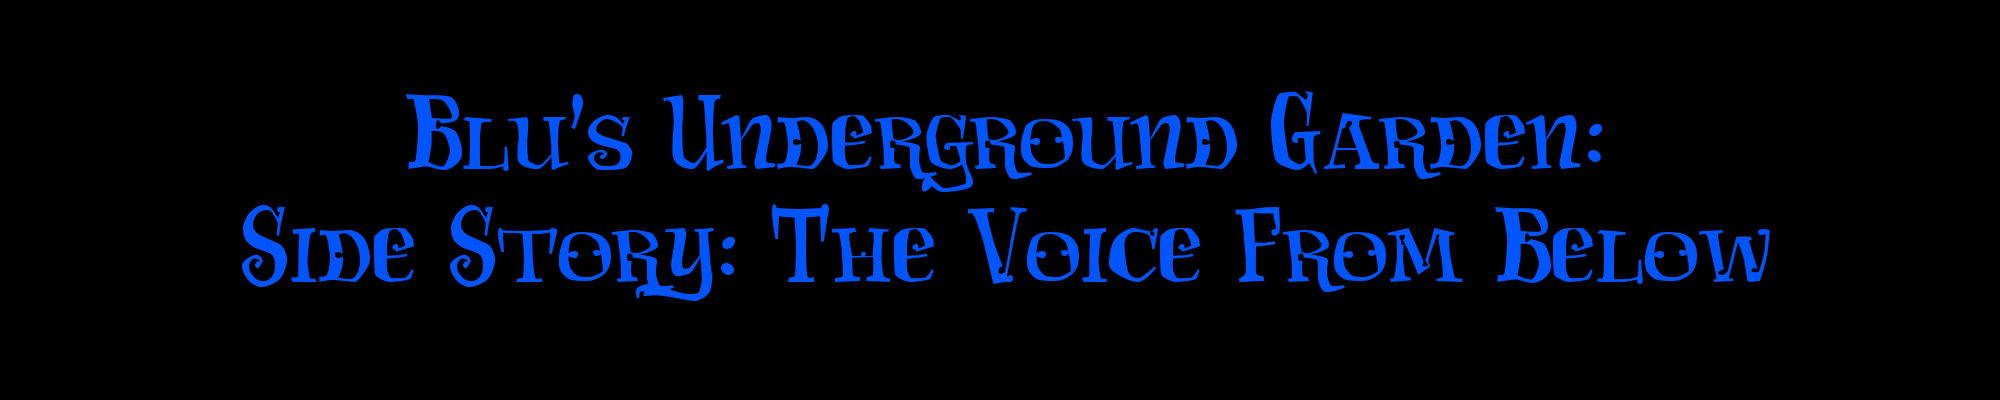 The Voice From Below (BlUnderGarden Demo)